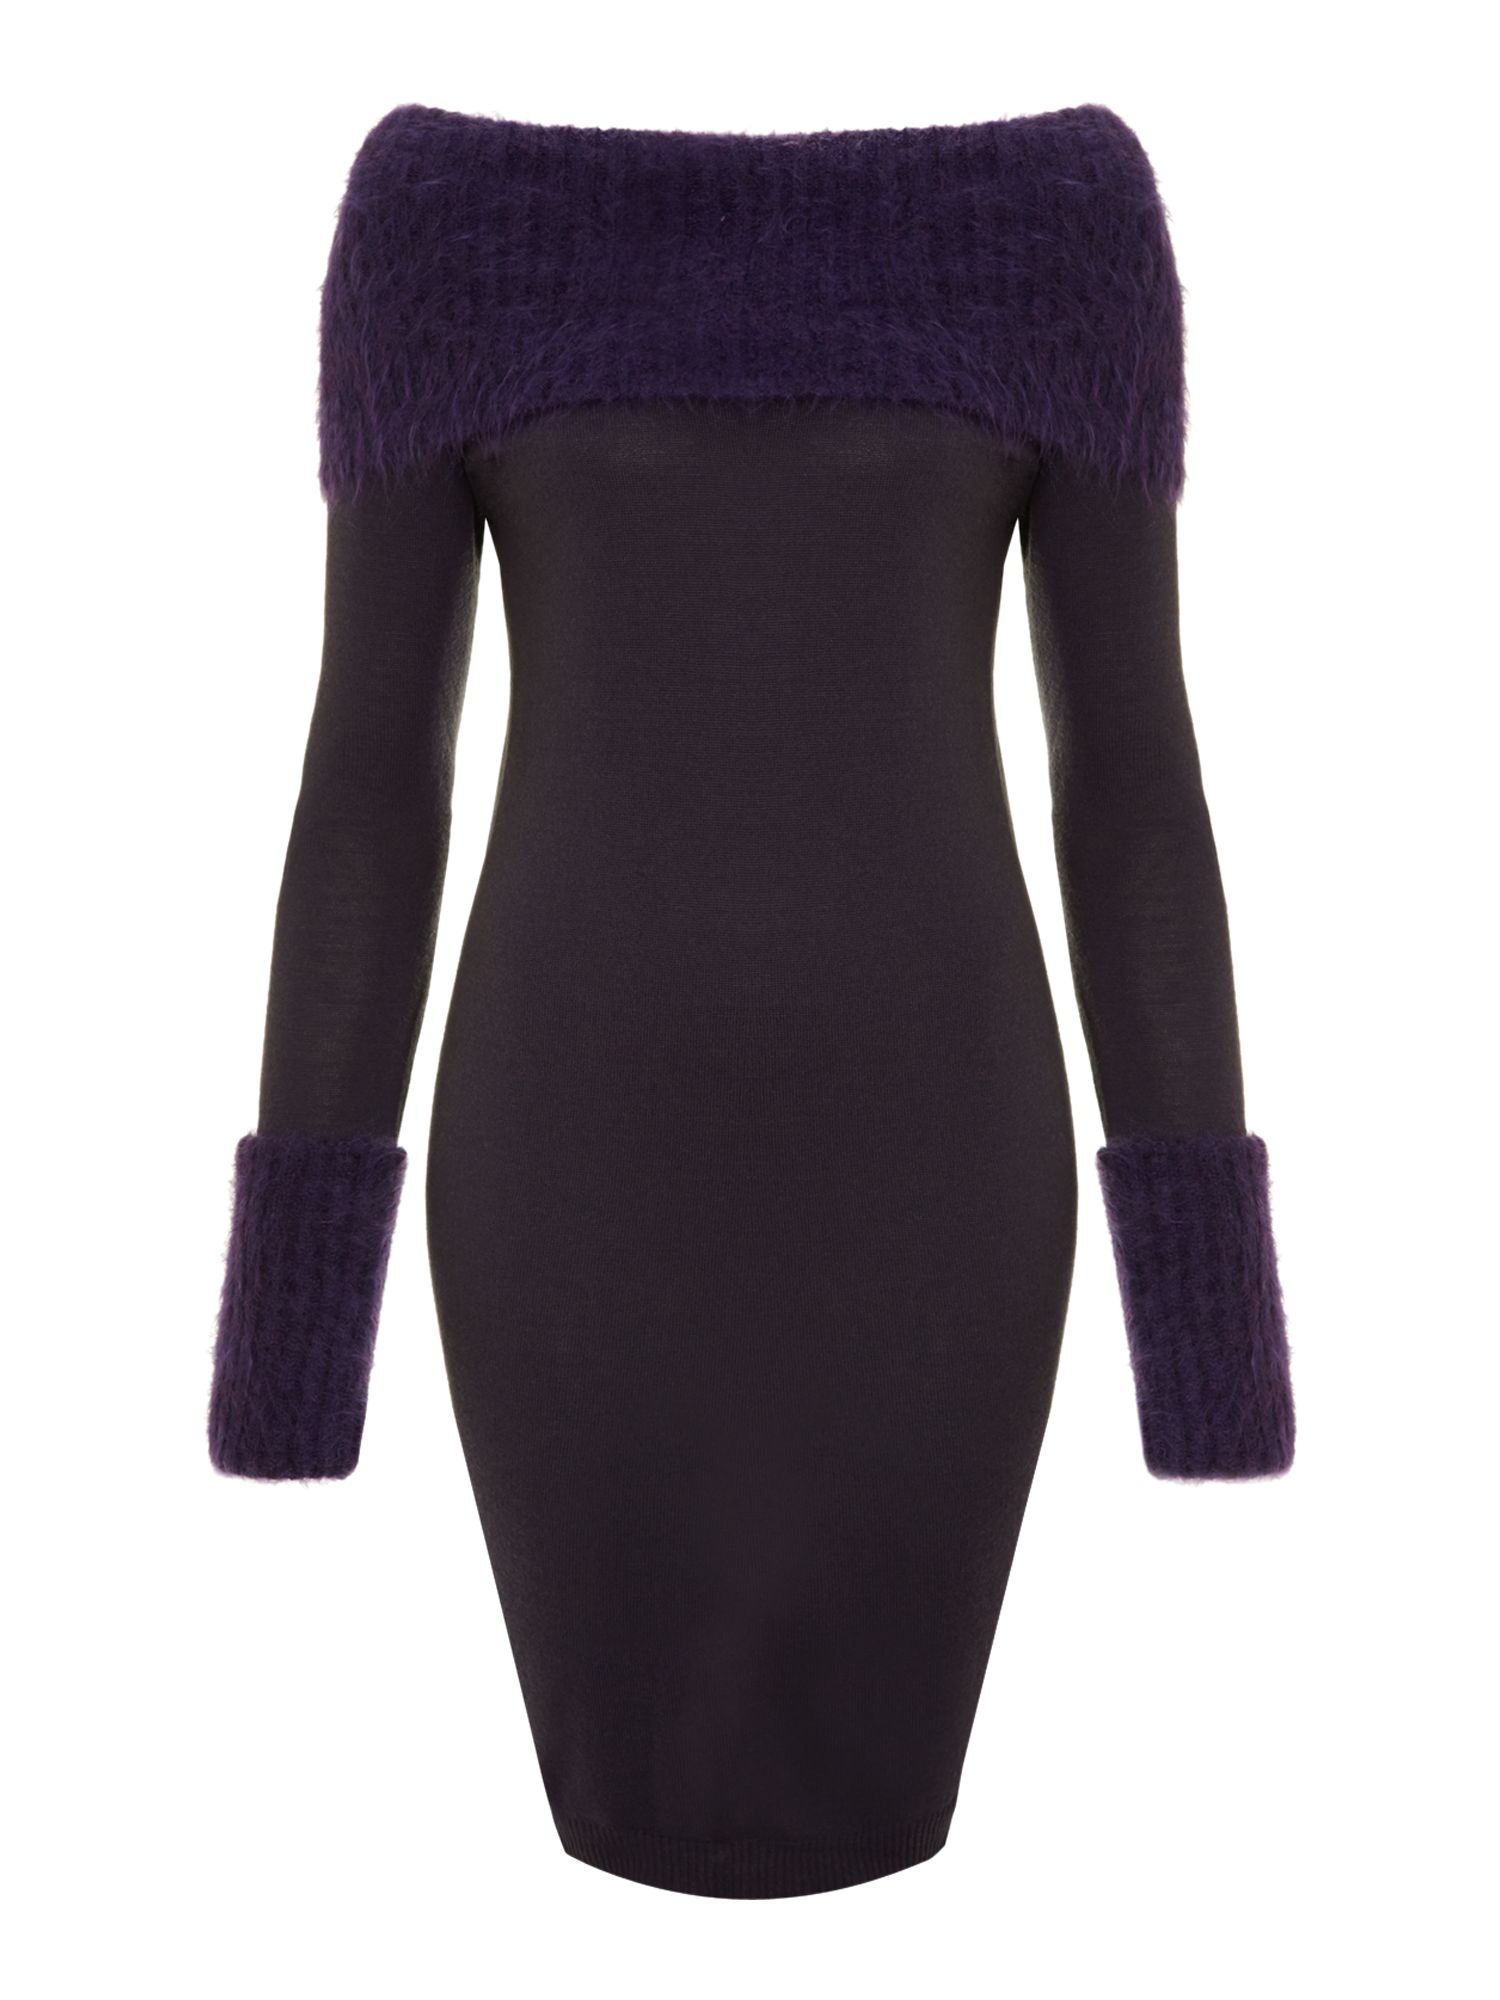 Jumper dress with oversize cuffs and collar